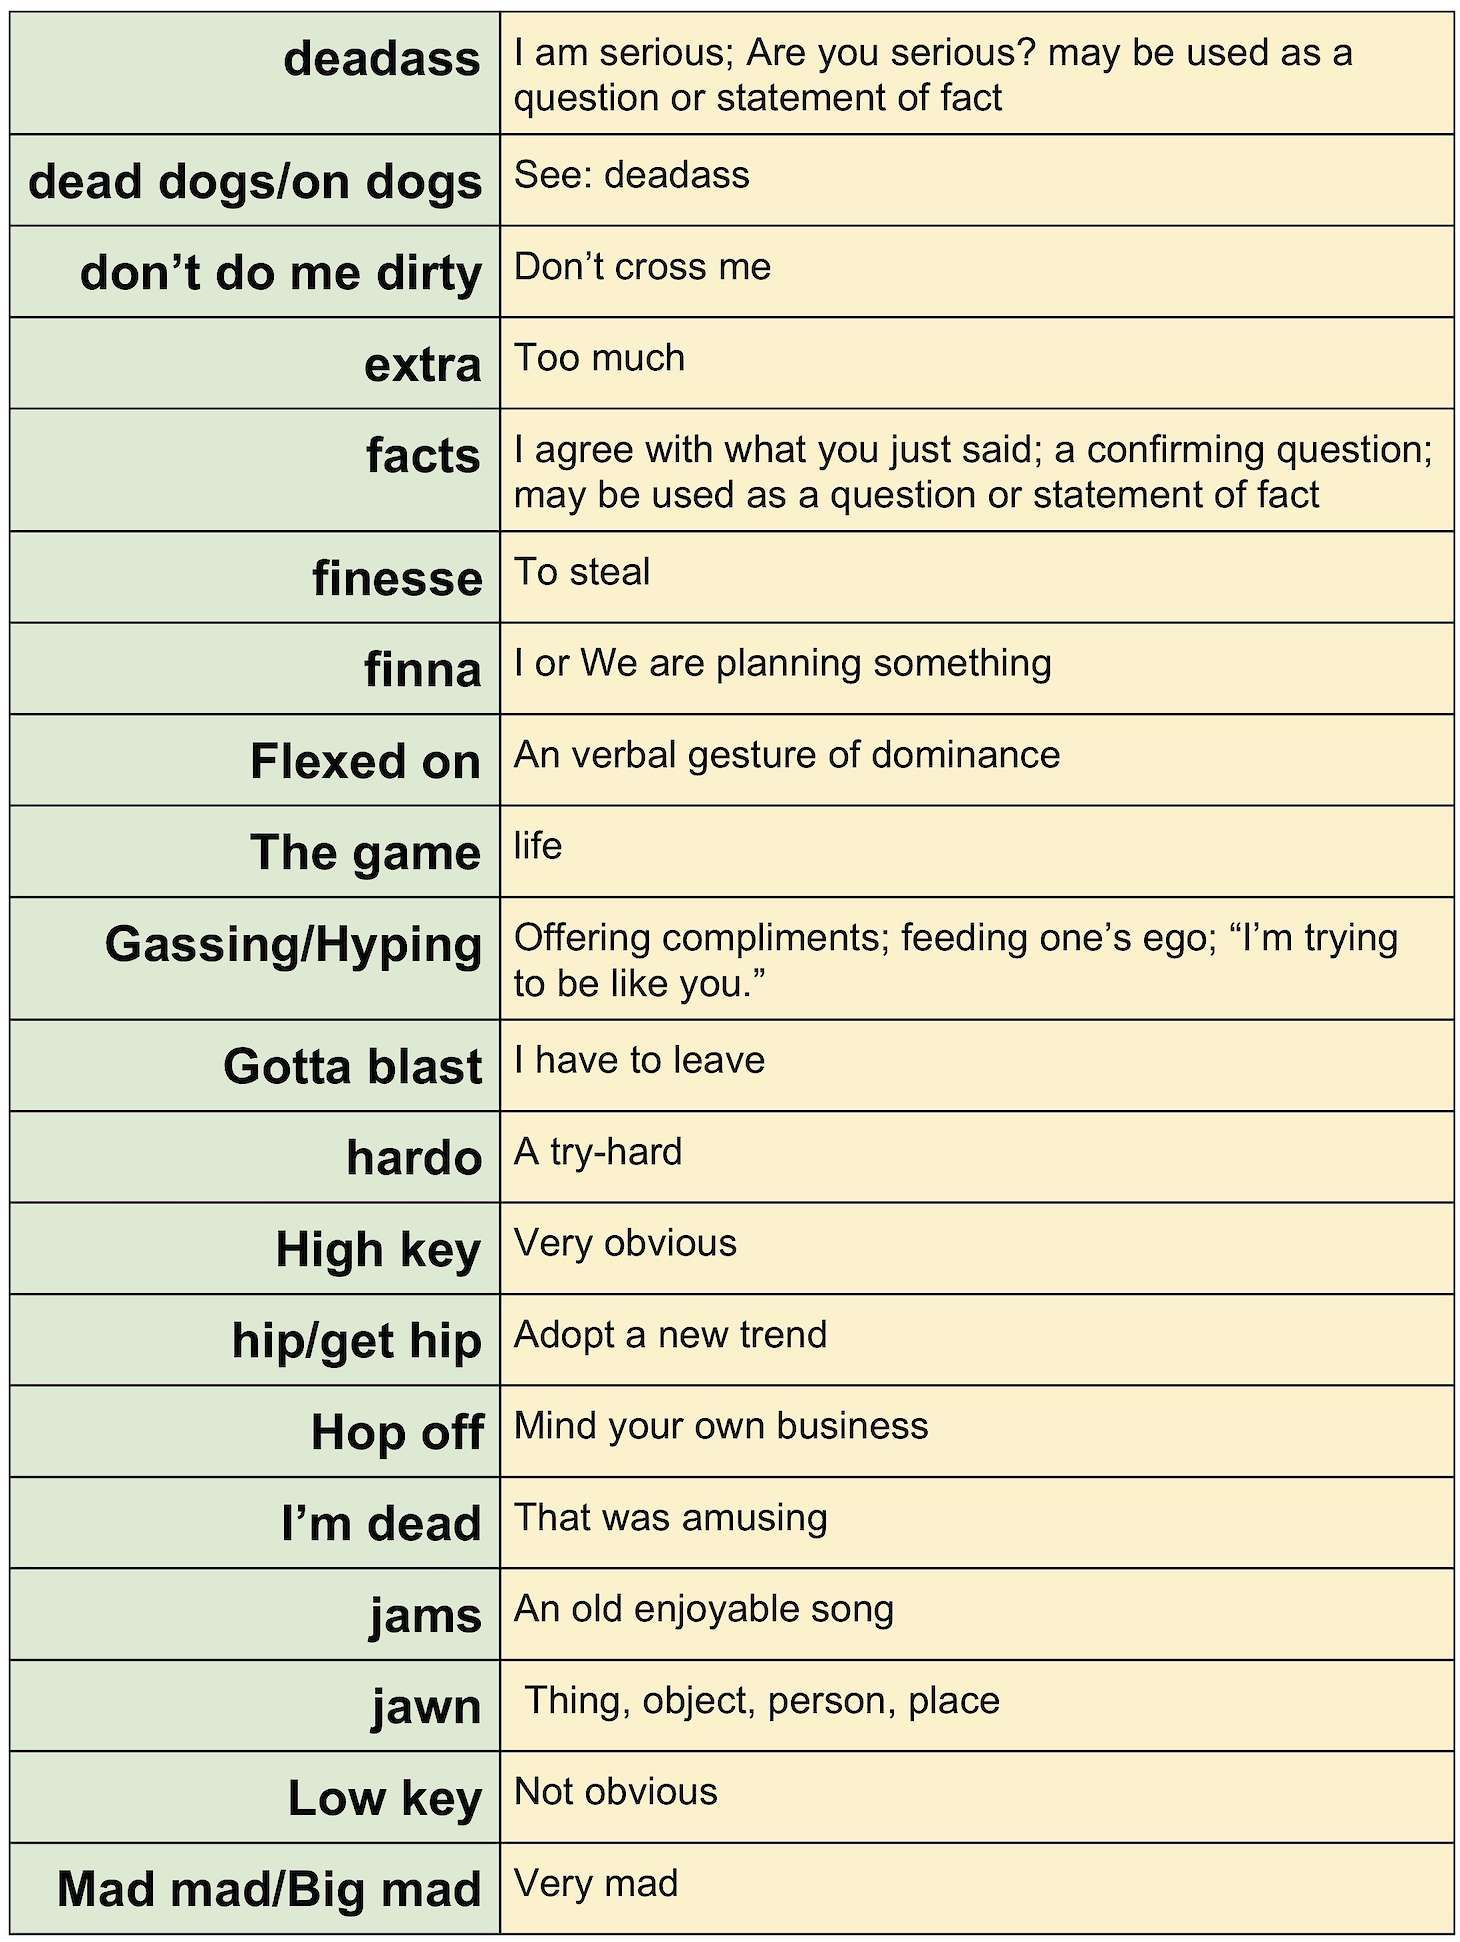 Generation Z Dictionary Teacher Breaks Down Slang Words Used By Students Recent News Drydenwire Com Slang Words Teacher Break Writing Humor